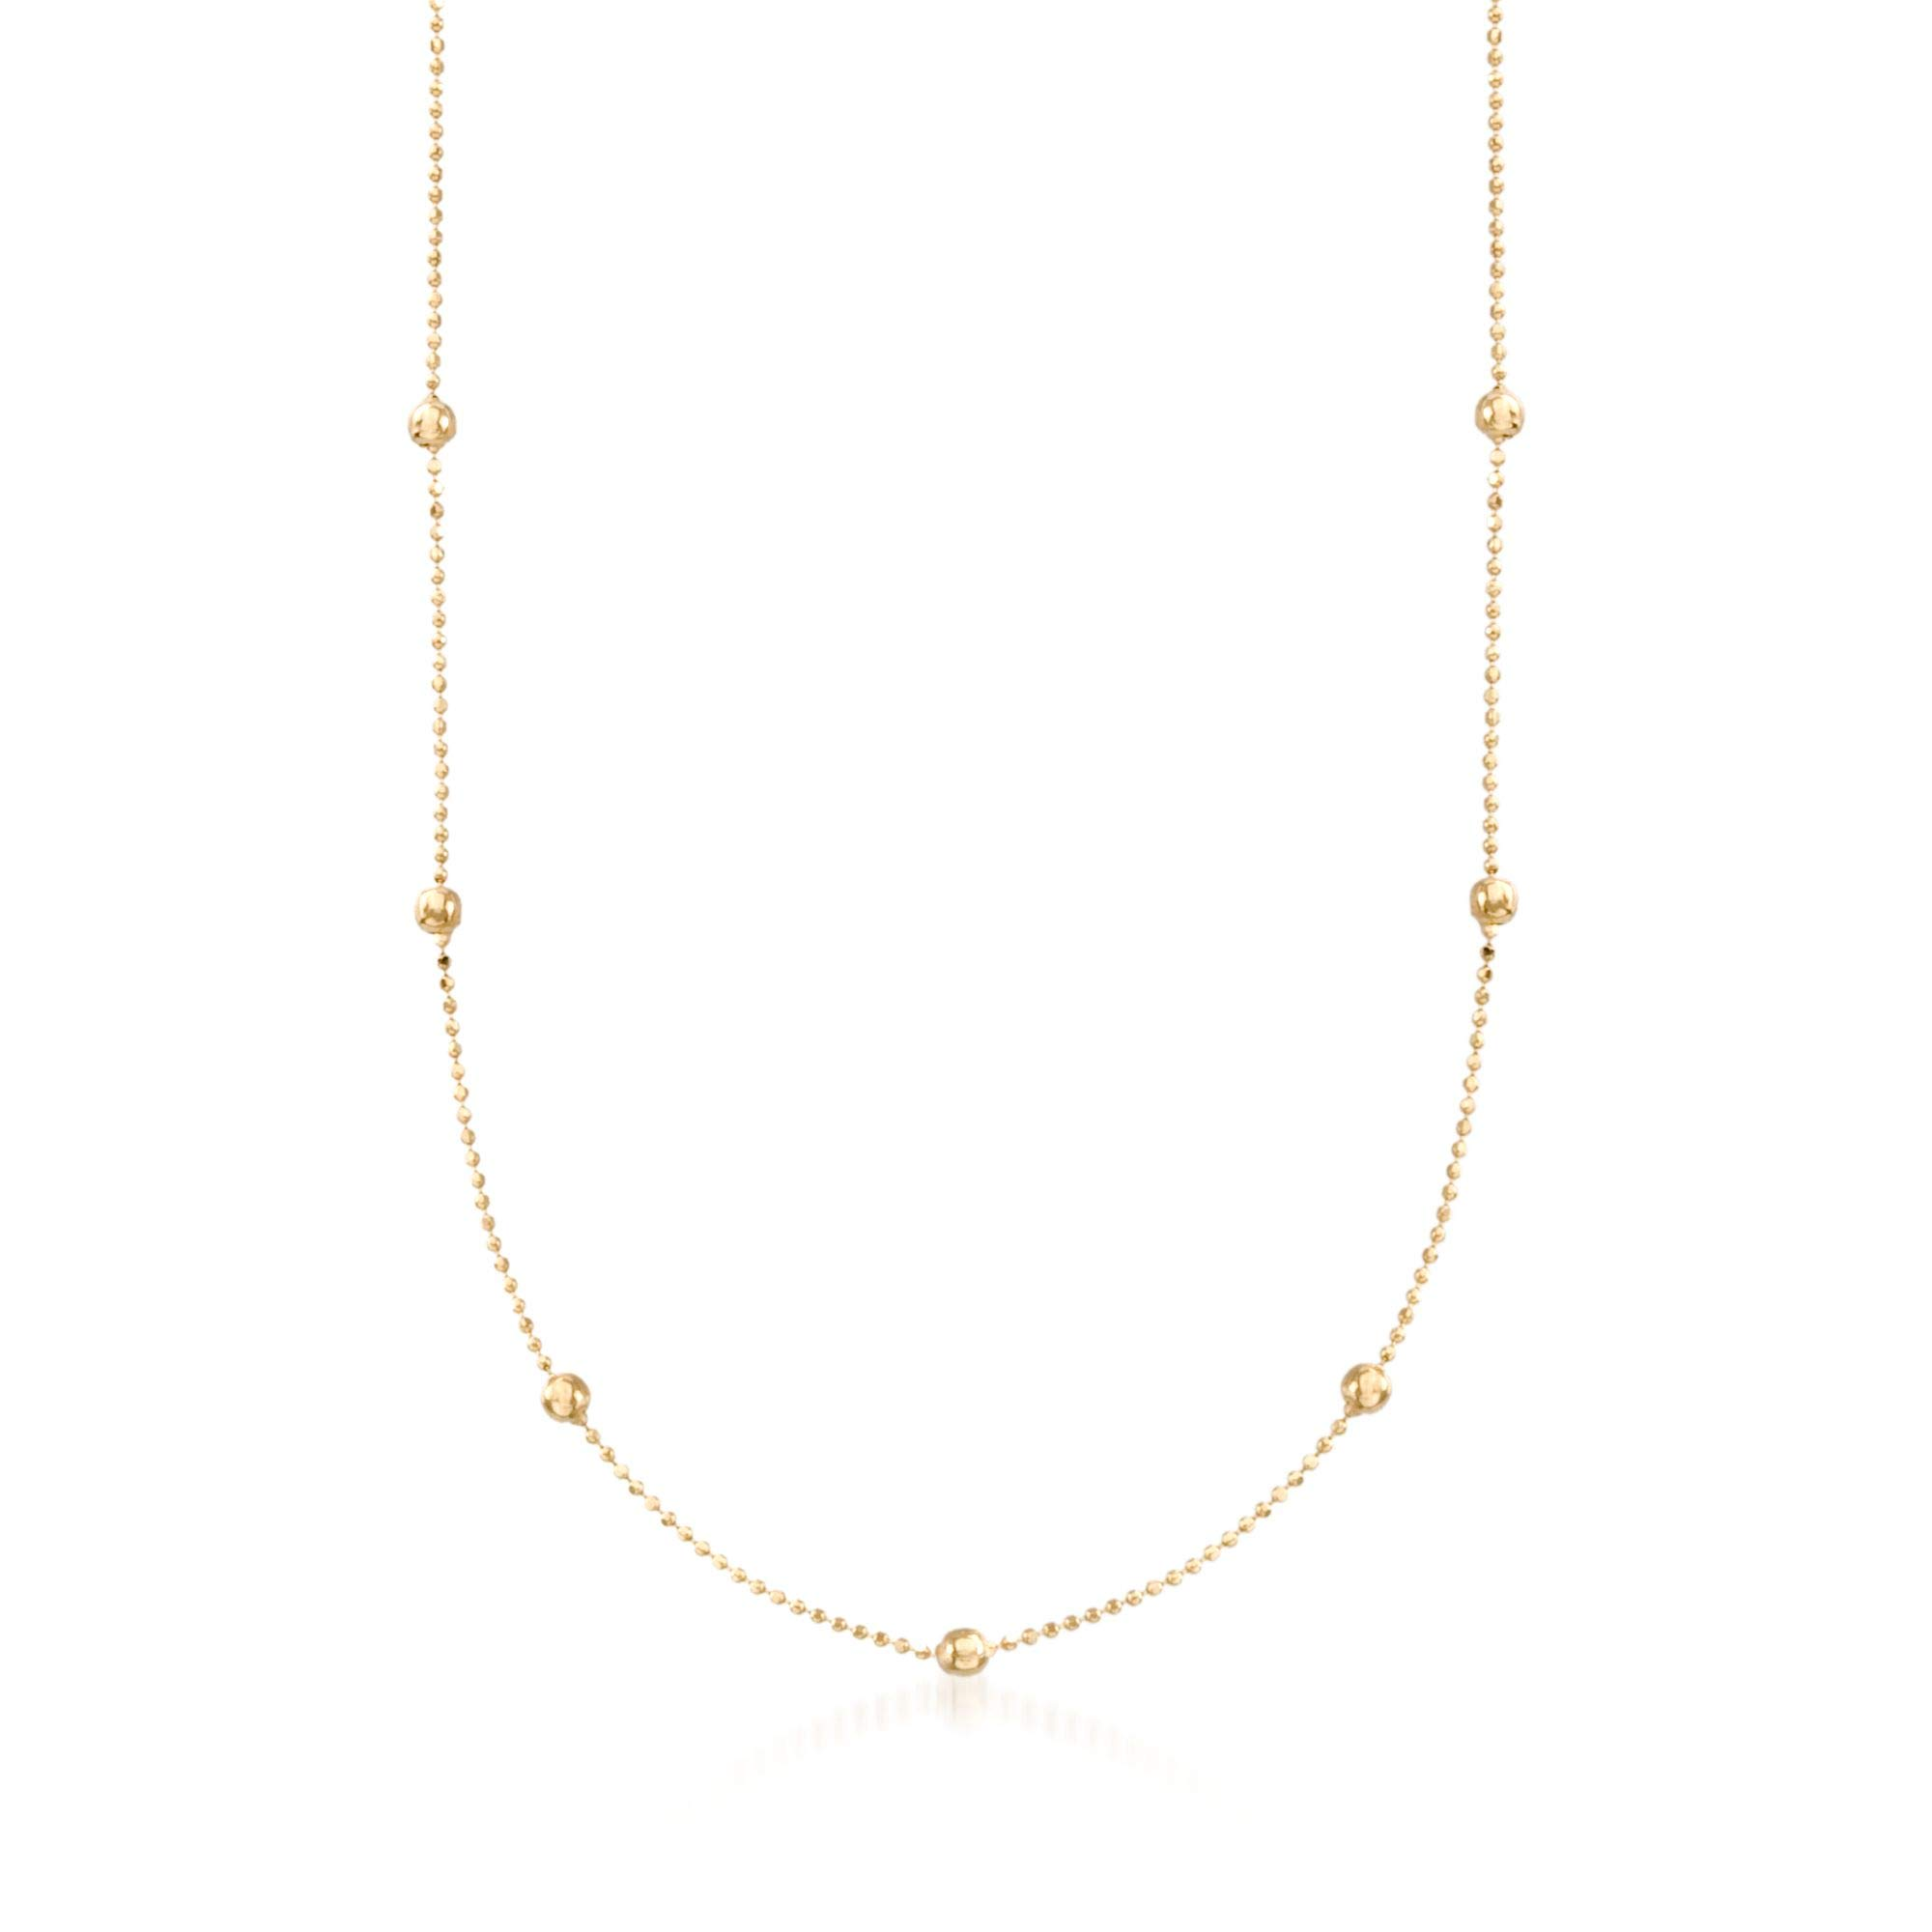 Ross-Simons 2mm 14kt Yellow Gold Bead Station Necklace by Ross-Simons